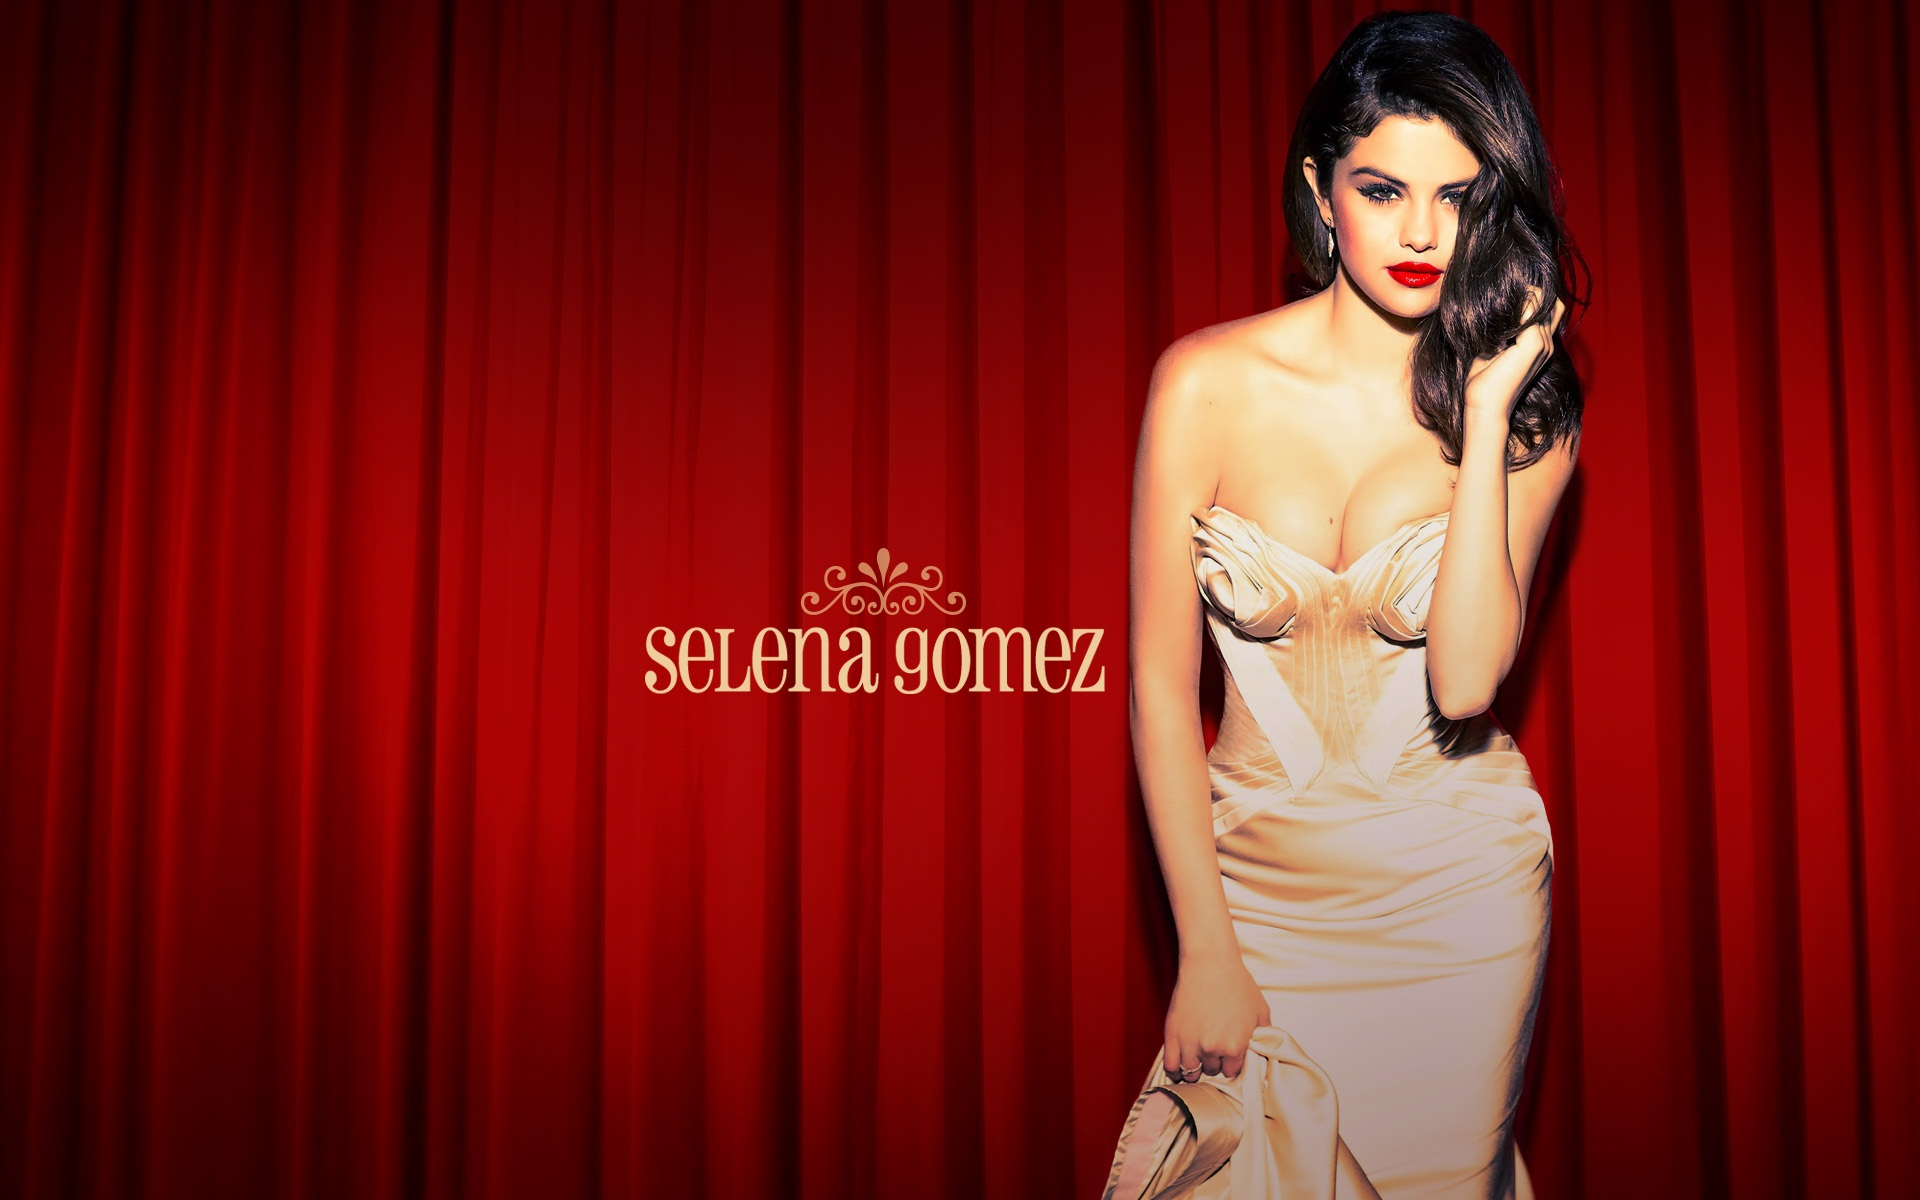 Selena gomez sexy and hot wallpapers wide screen wallpaper 1080p hot and sexy selena gomez voltagebd Image collections